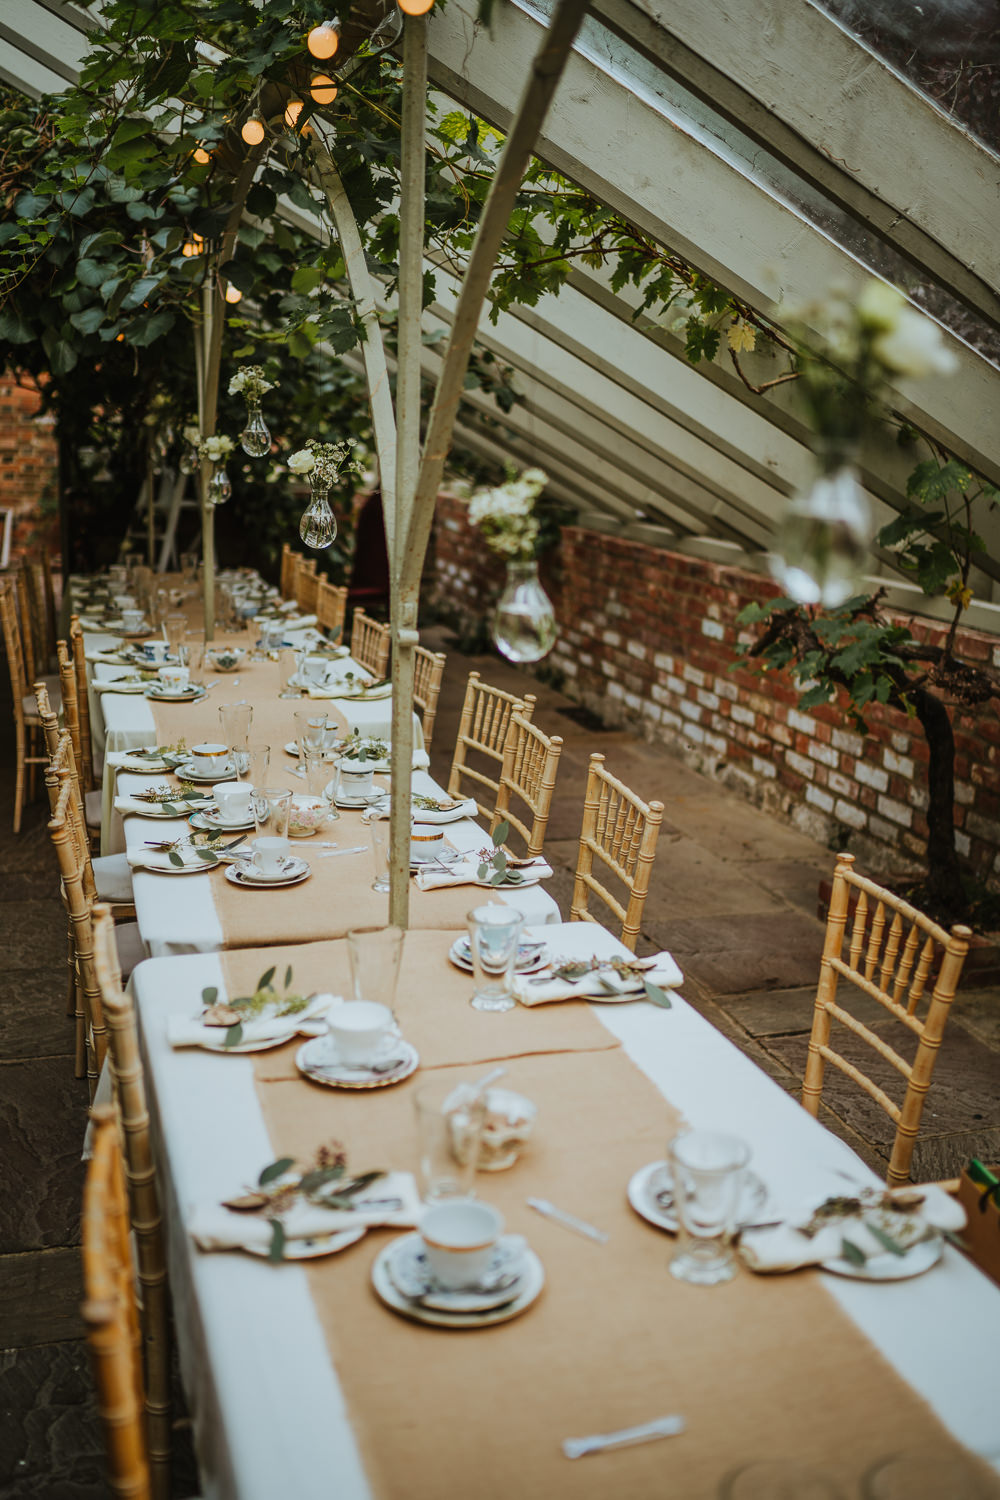 Glass House Reception Secret Garden Kent Trees Hessian Burlap Tables Festoon Lights Hanging Flowers Micro Wedding Nicola Dawson Photography